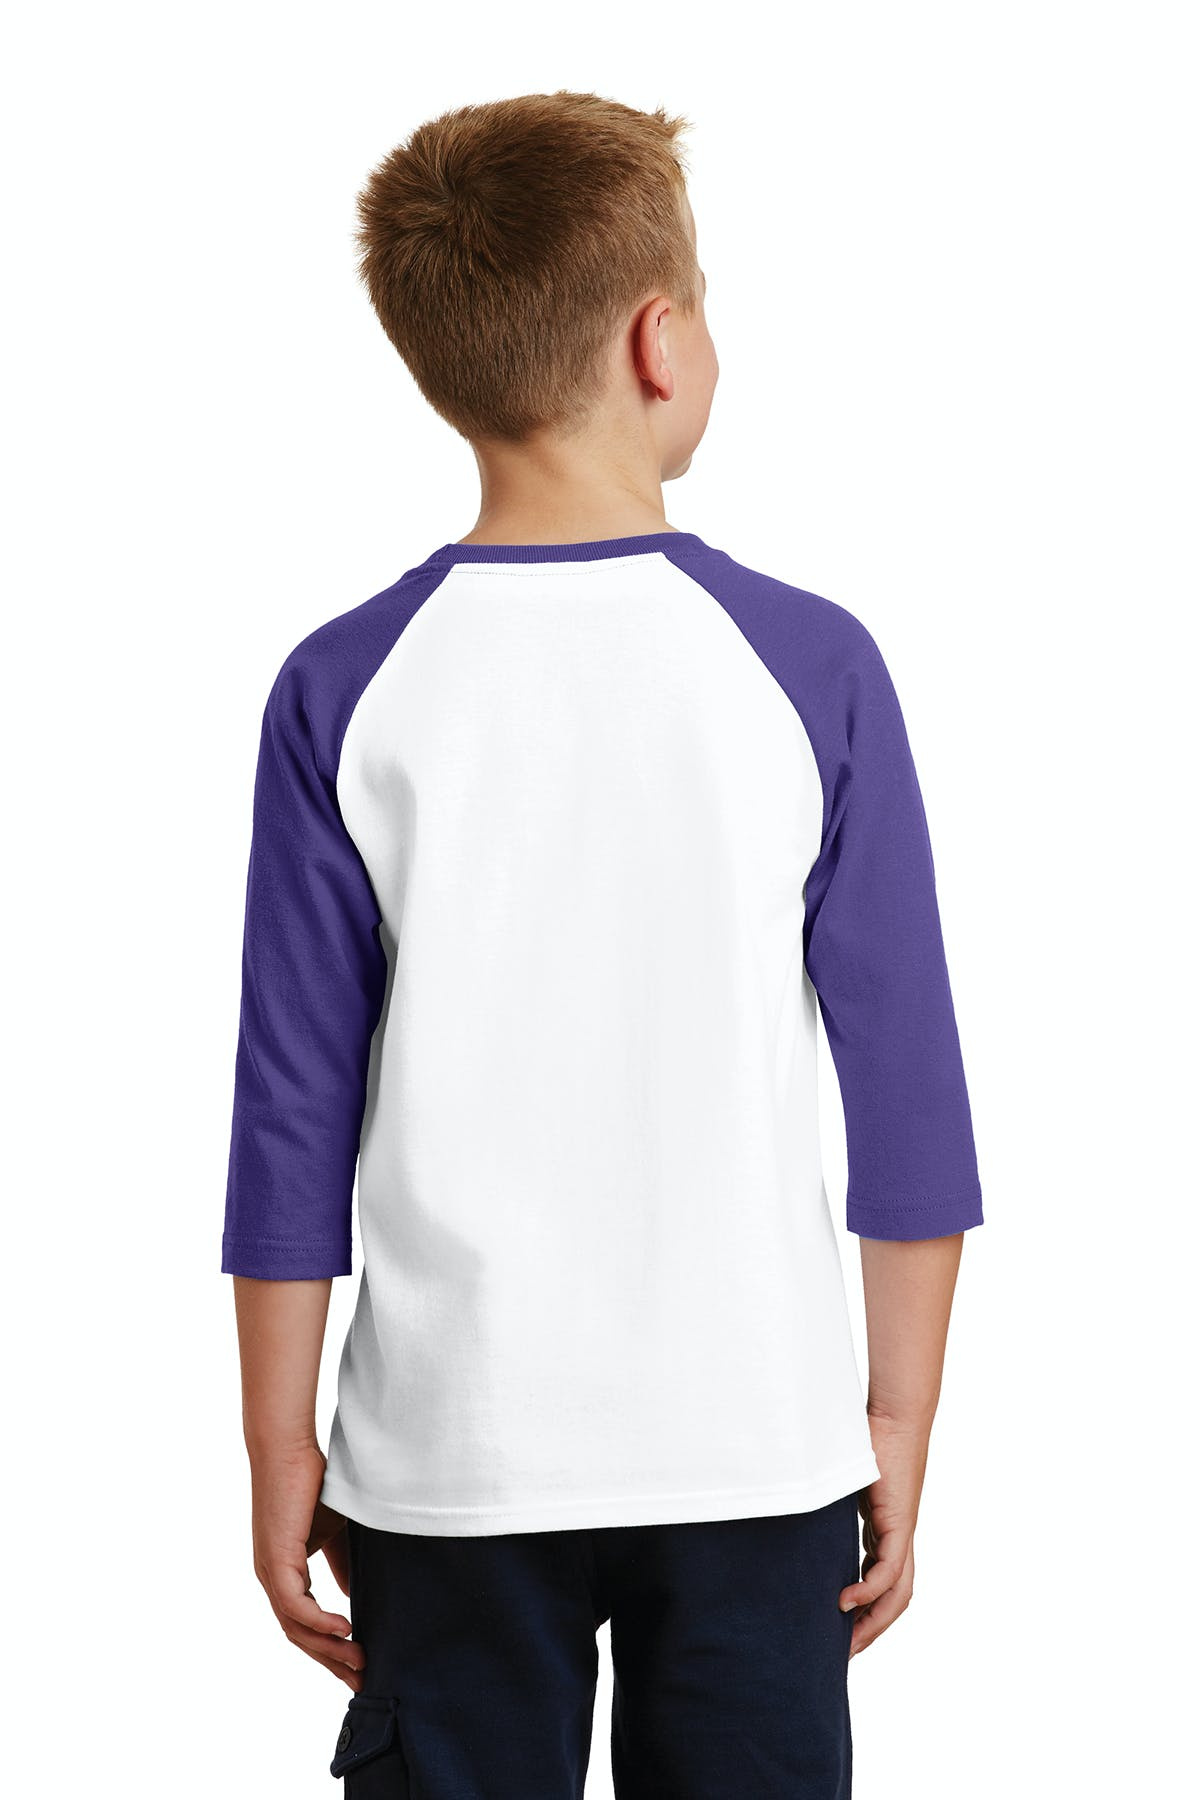 Port & Company® Youth Core Blend 3/4-Sleeve Raglan Tee - sold by PRINT CITY GRAPHICS, INC